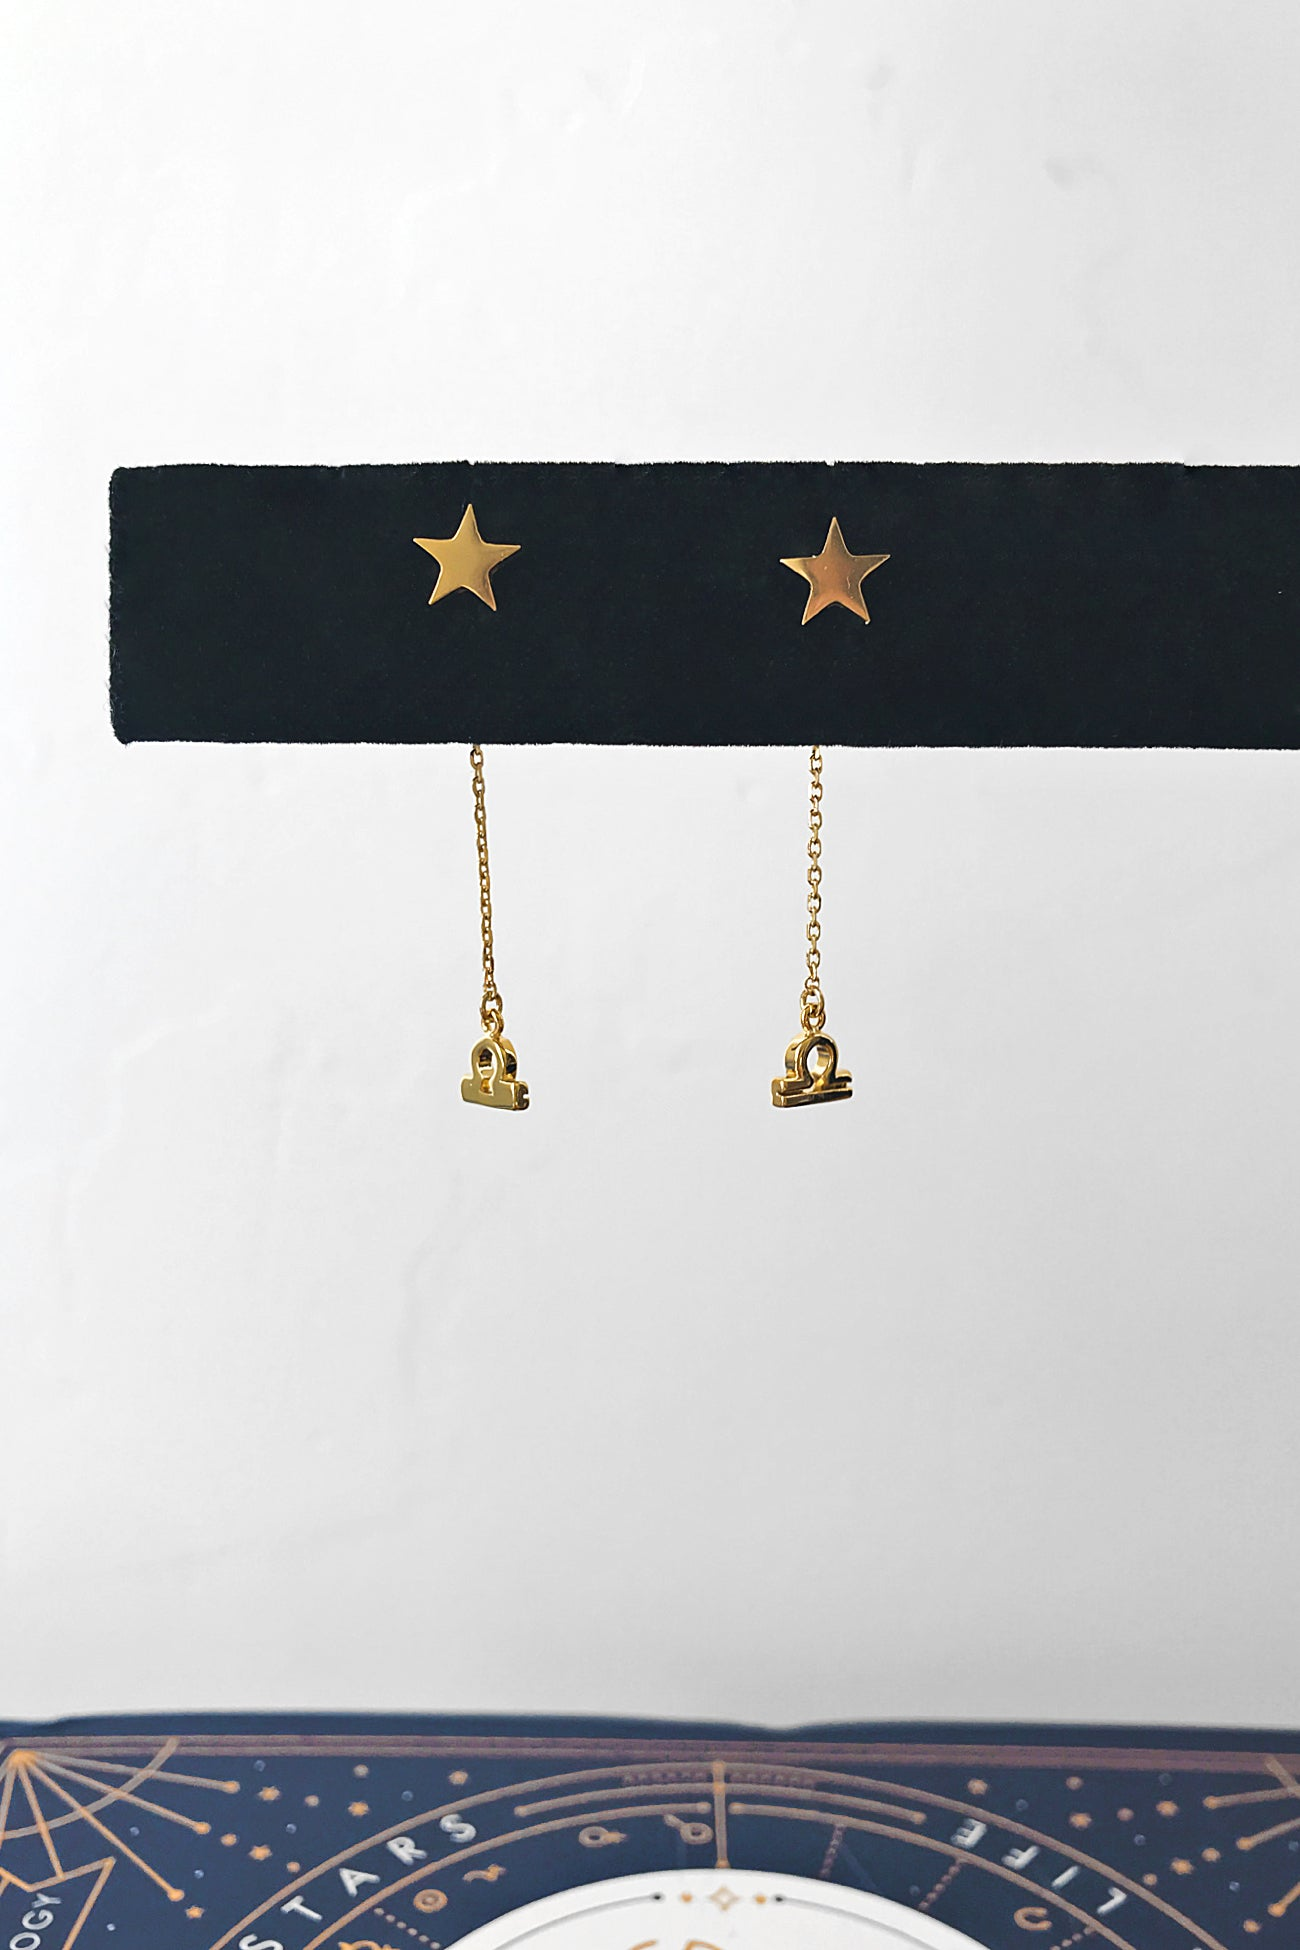 Star sign chain stud earrings